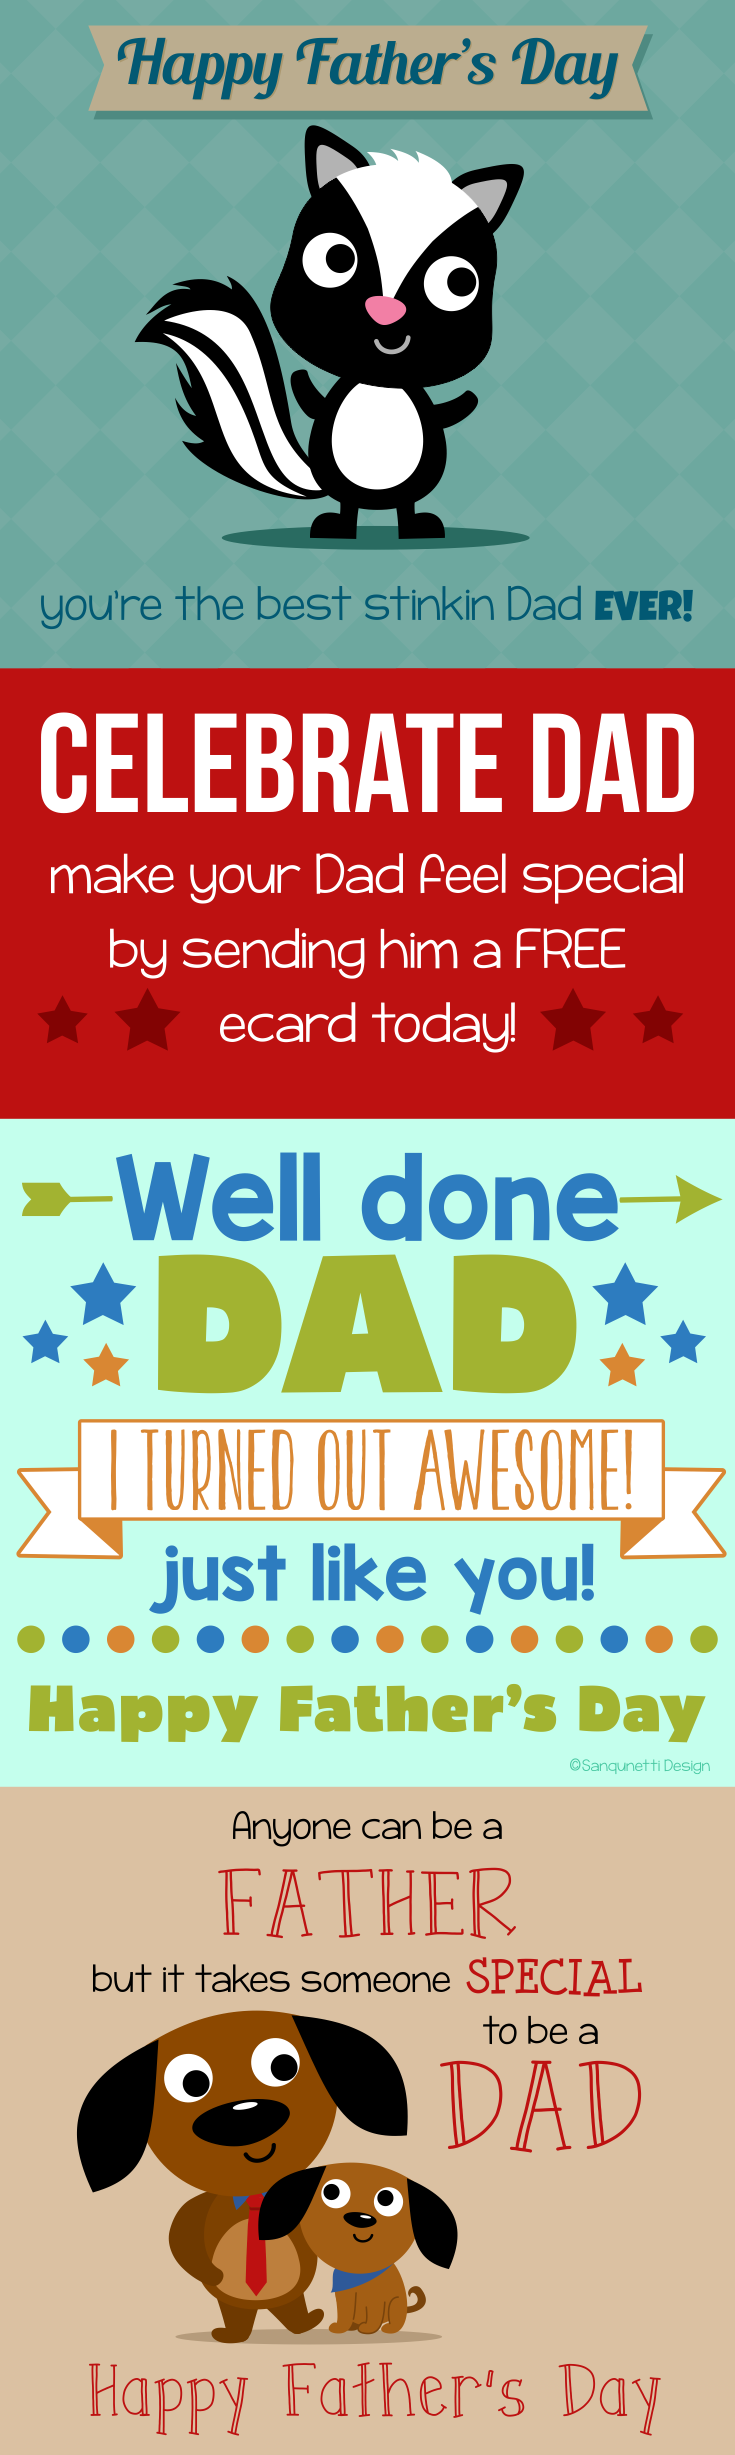 Celebrate dad this fathers day by sending him a free ecard greeting celebrate dad this fathers day by sending him a free ecard greeting card kristyandbryce Images